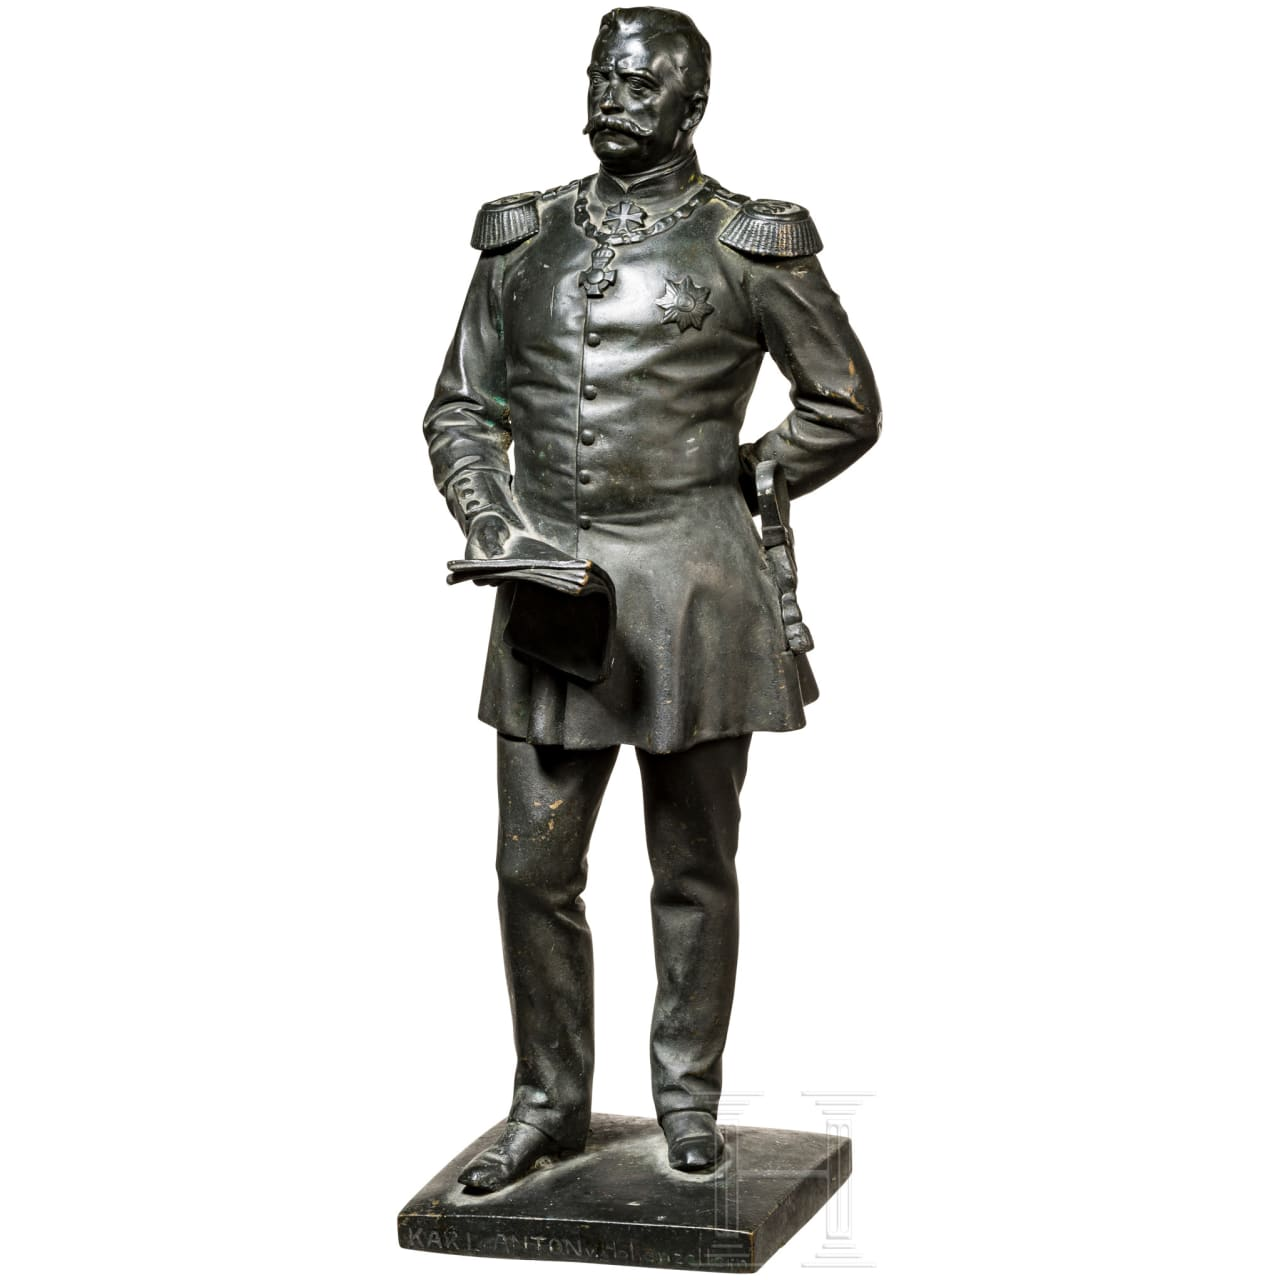 Bronze figure of Prince Karl Anton von Hohenzollern (1811 - 1885) as general